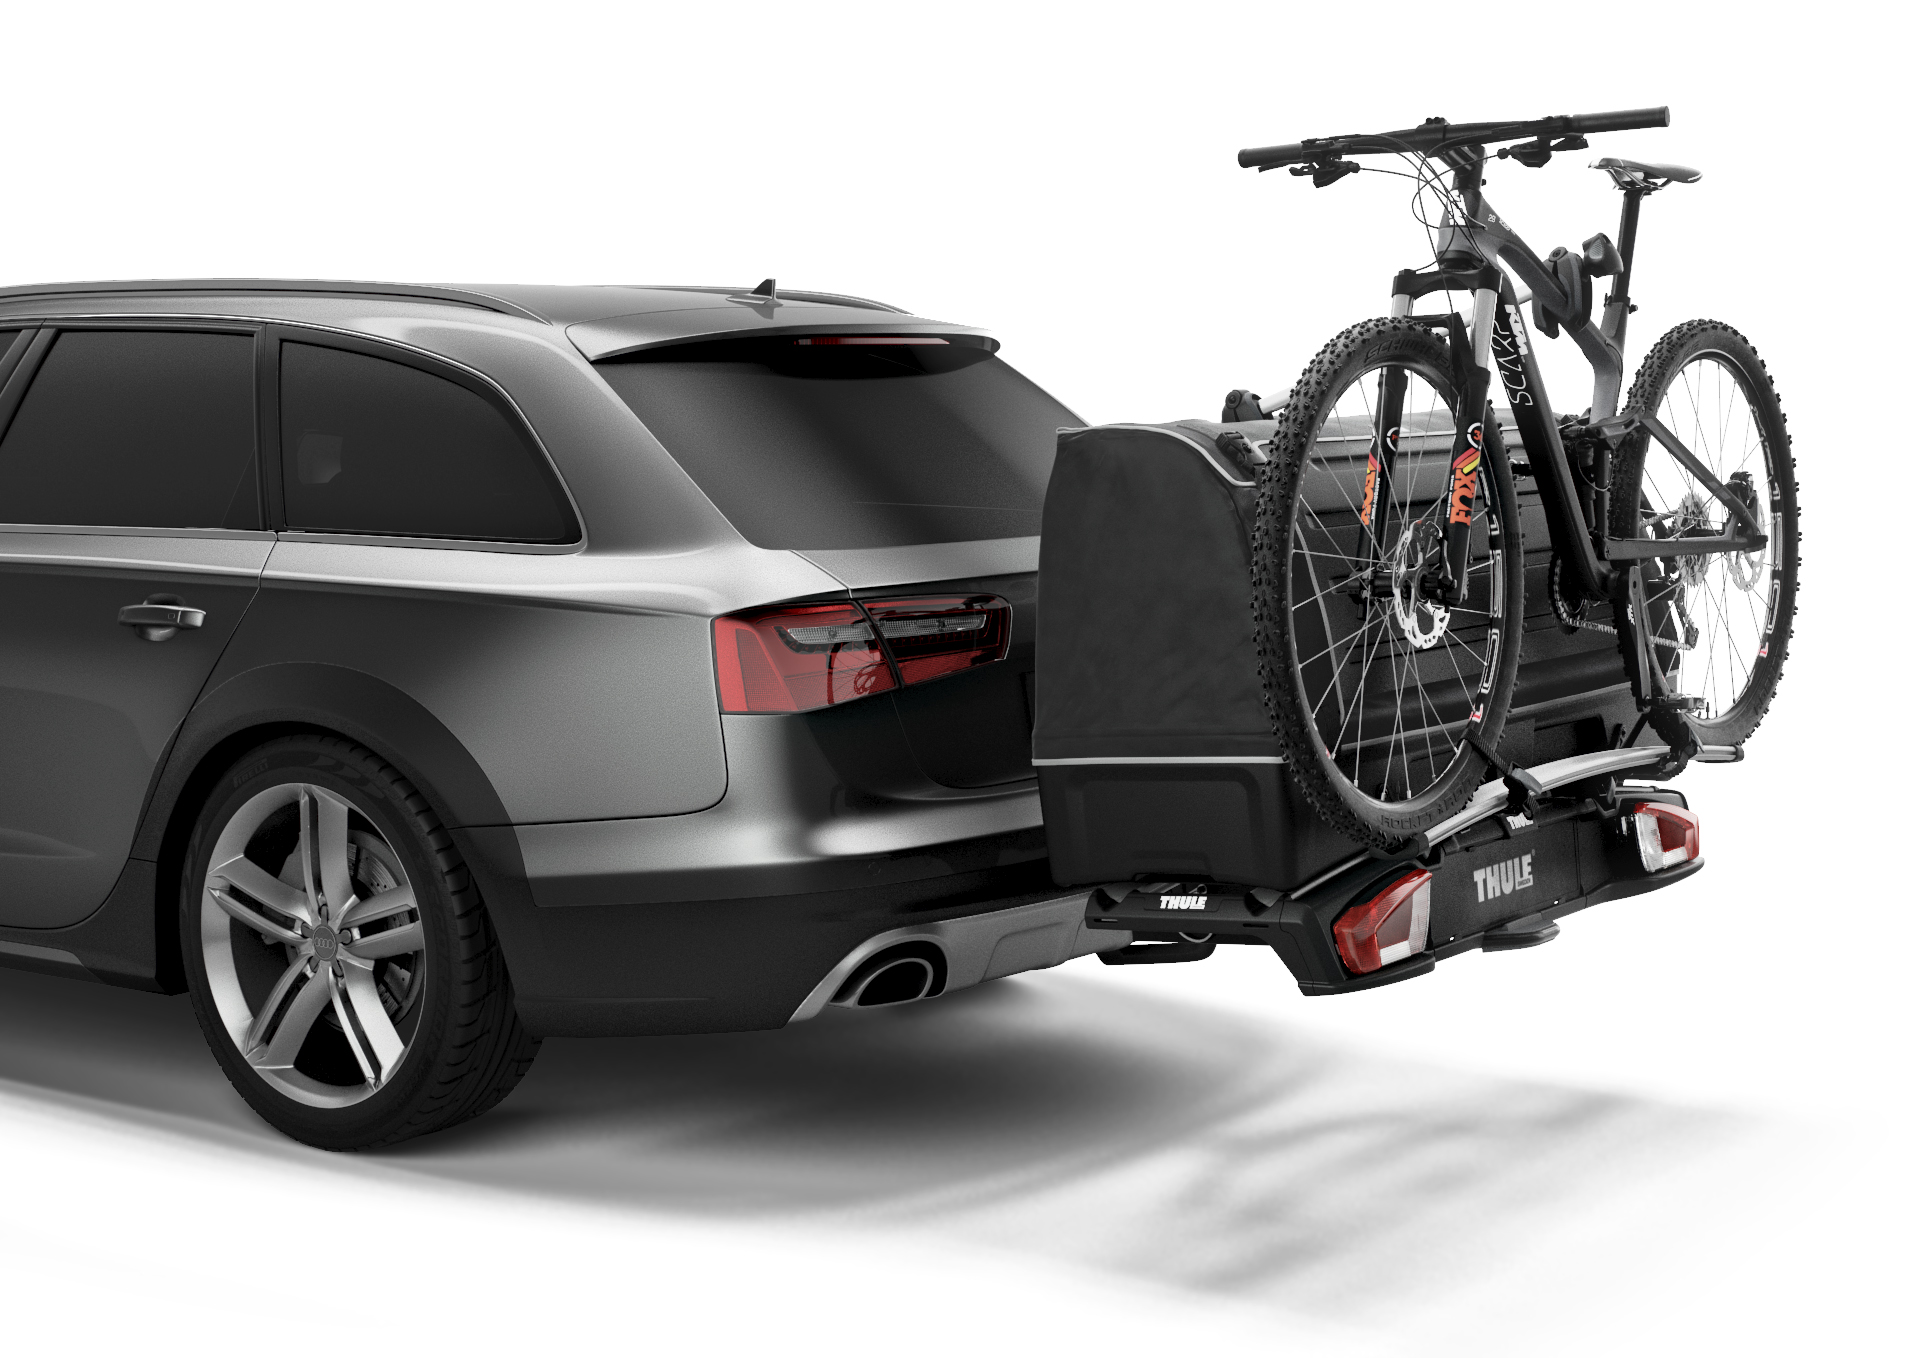 Thule Backspace Xt Cargo Box To Fit Onto The Velospace Xt